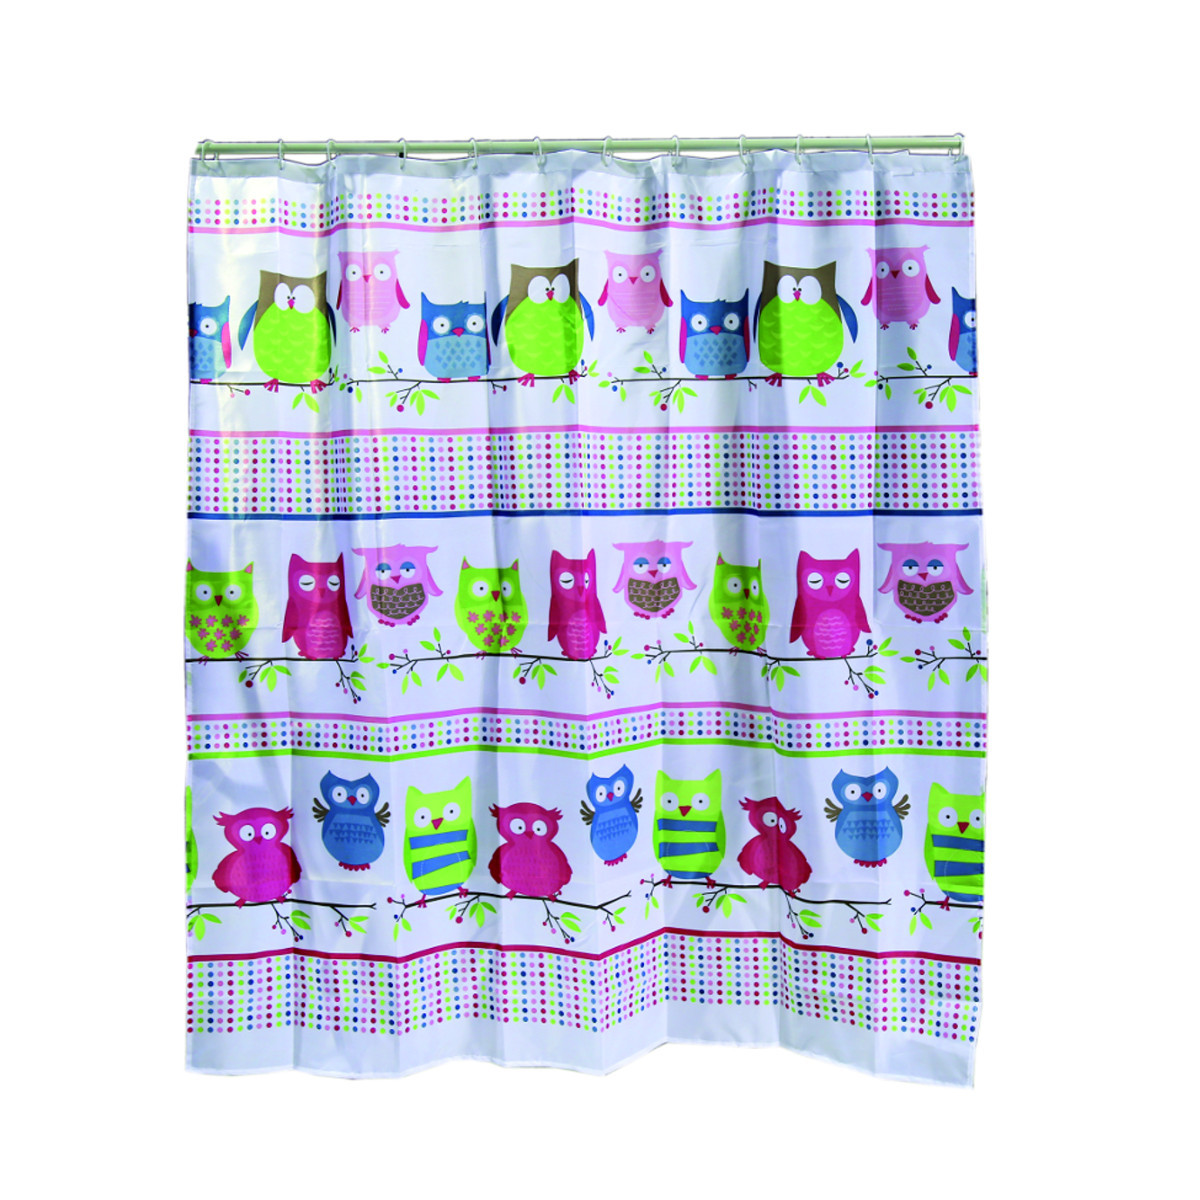 Shower curtain owls